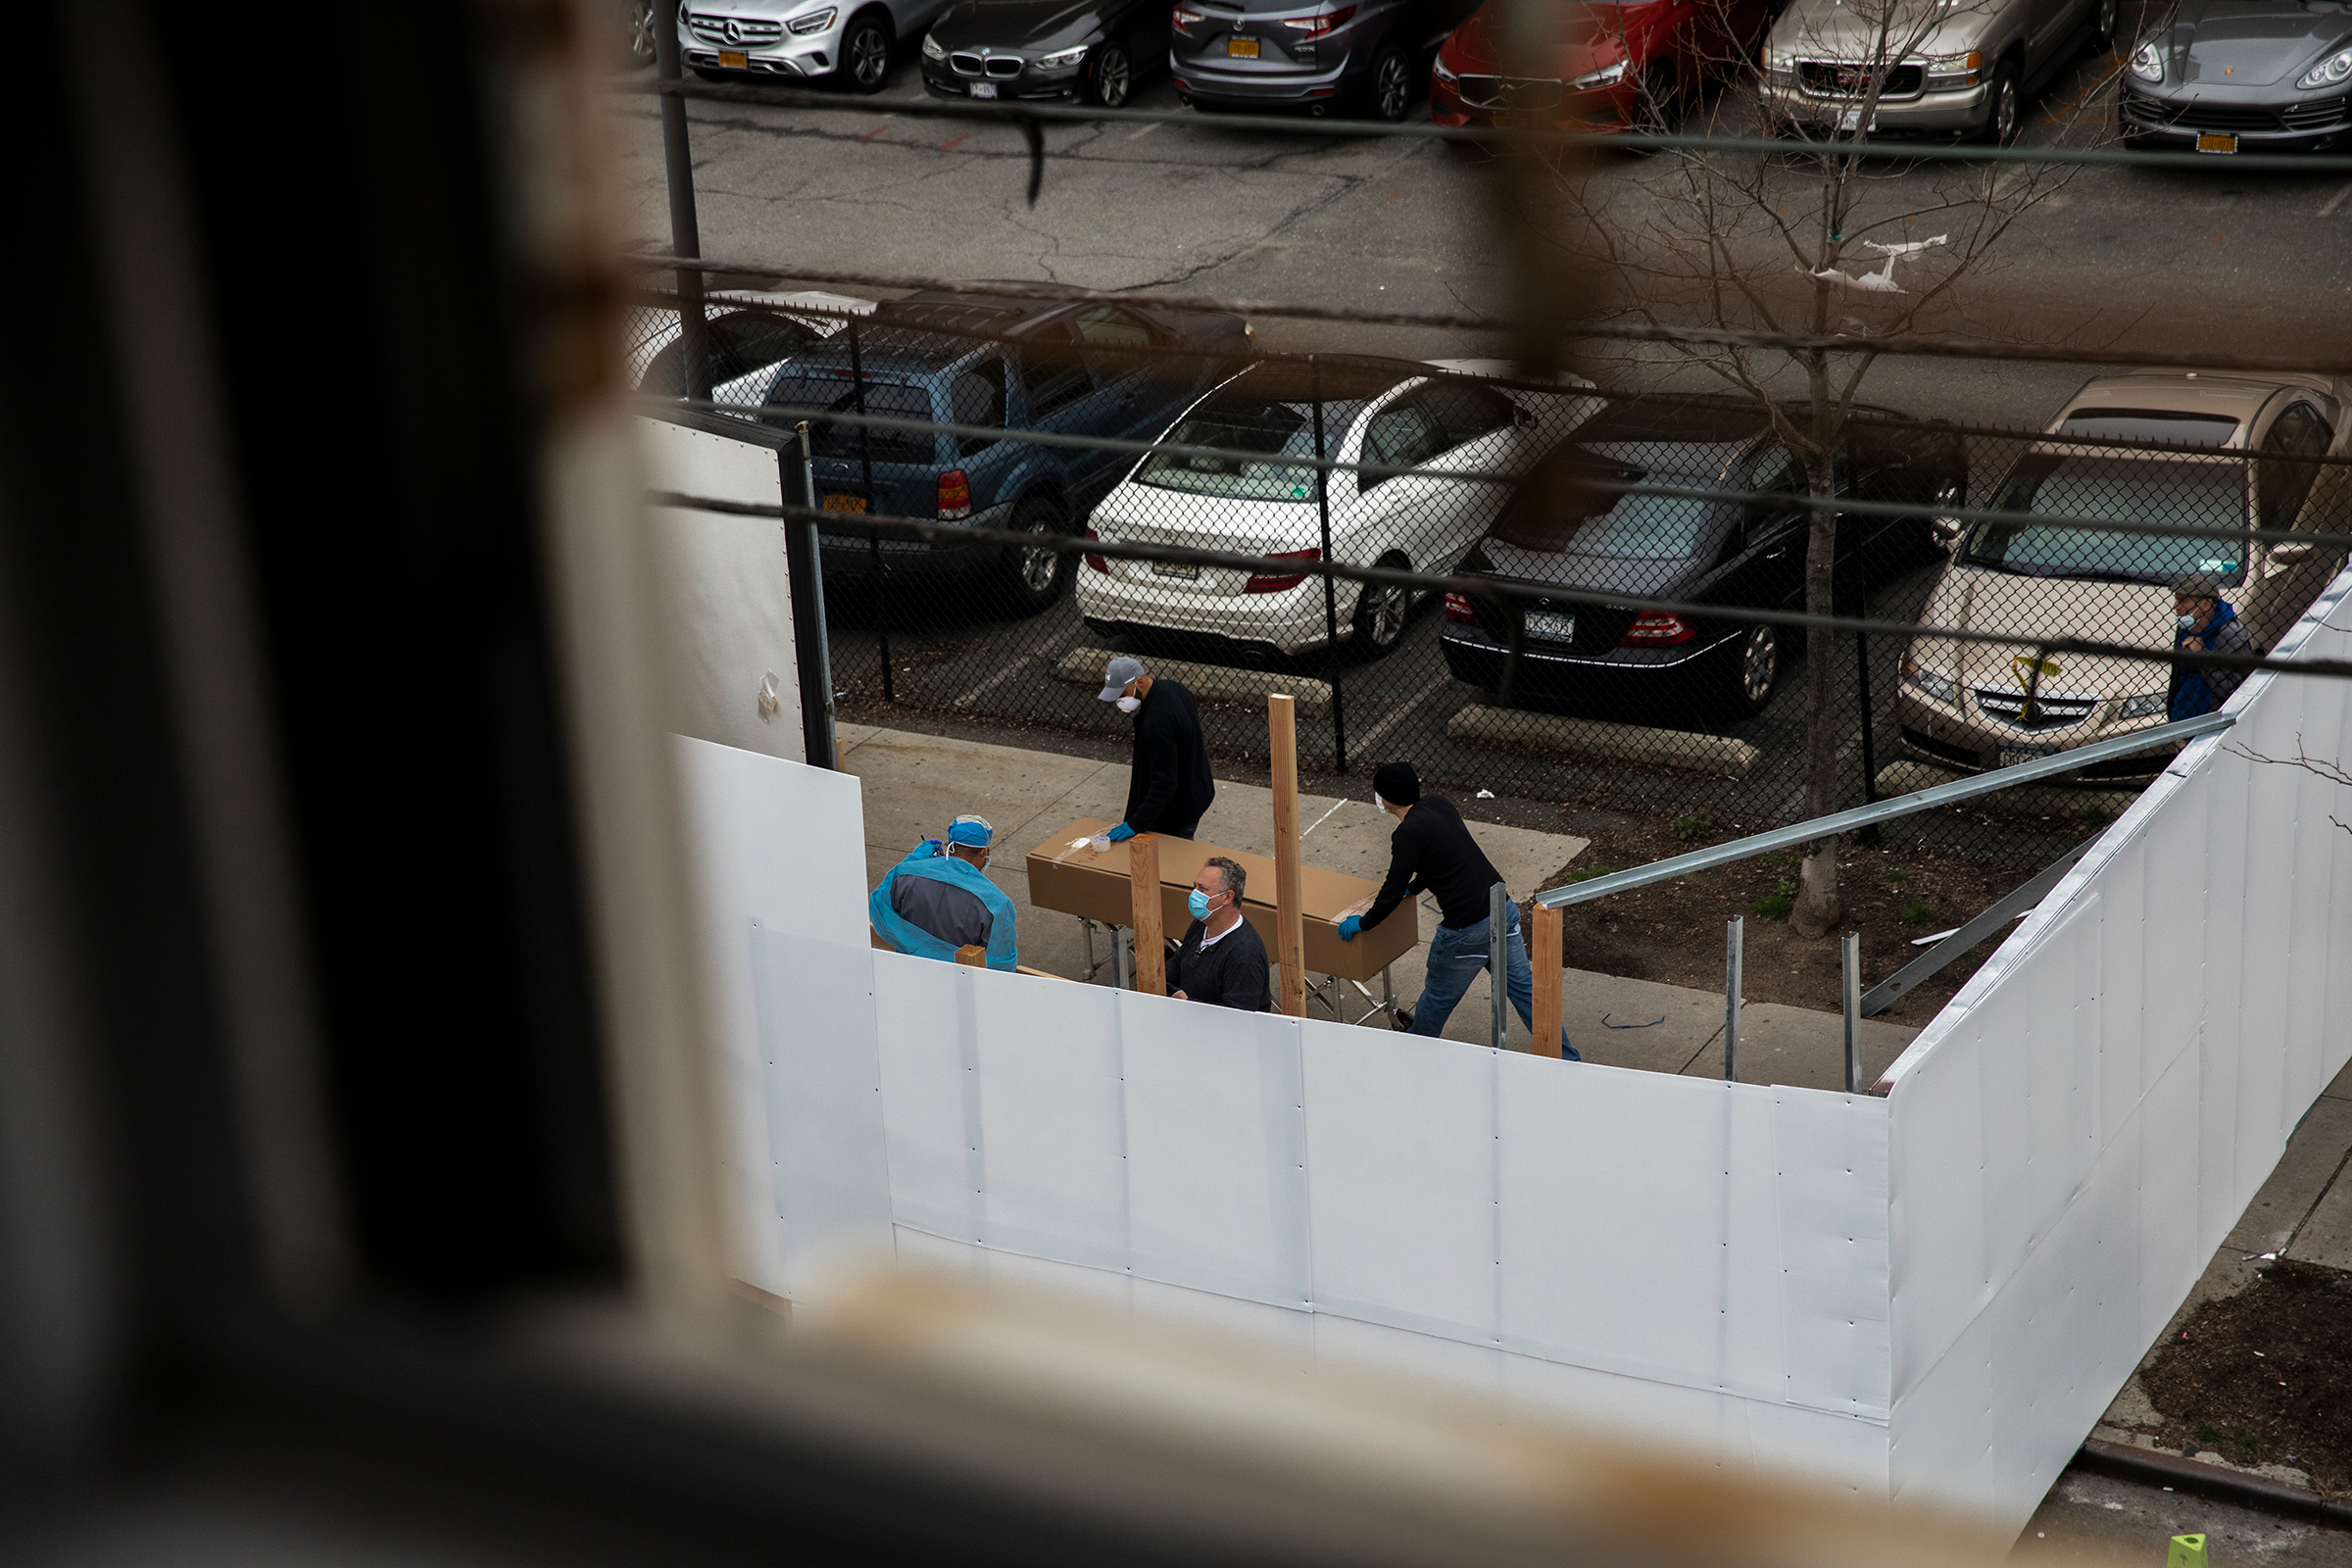 Workers transport a casket-sized box near the morgue set up outside Wyckoff Heights Medical Center in Brooklyn on March 30.